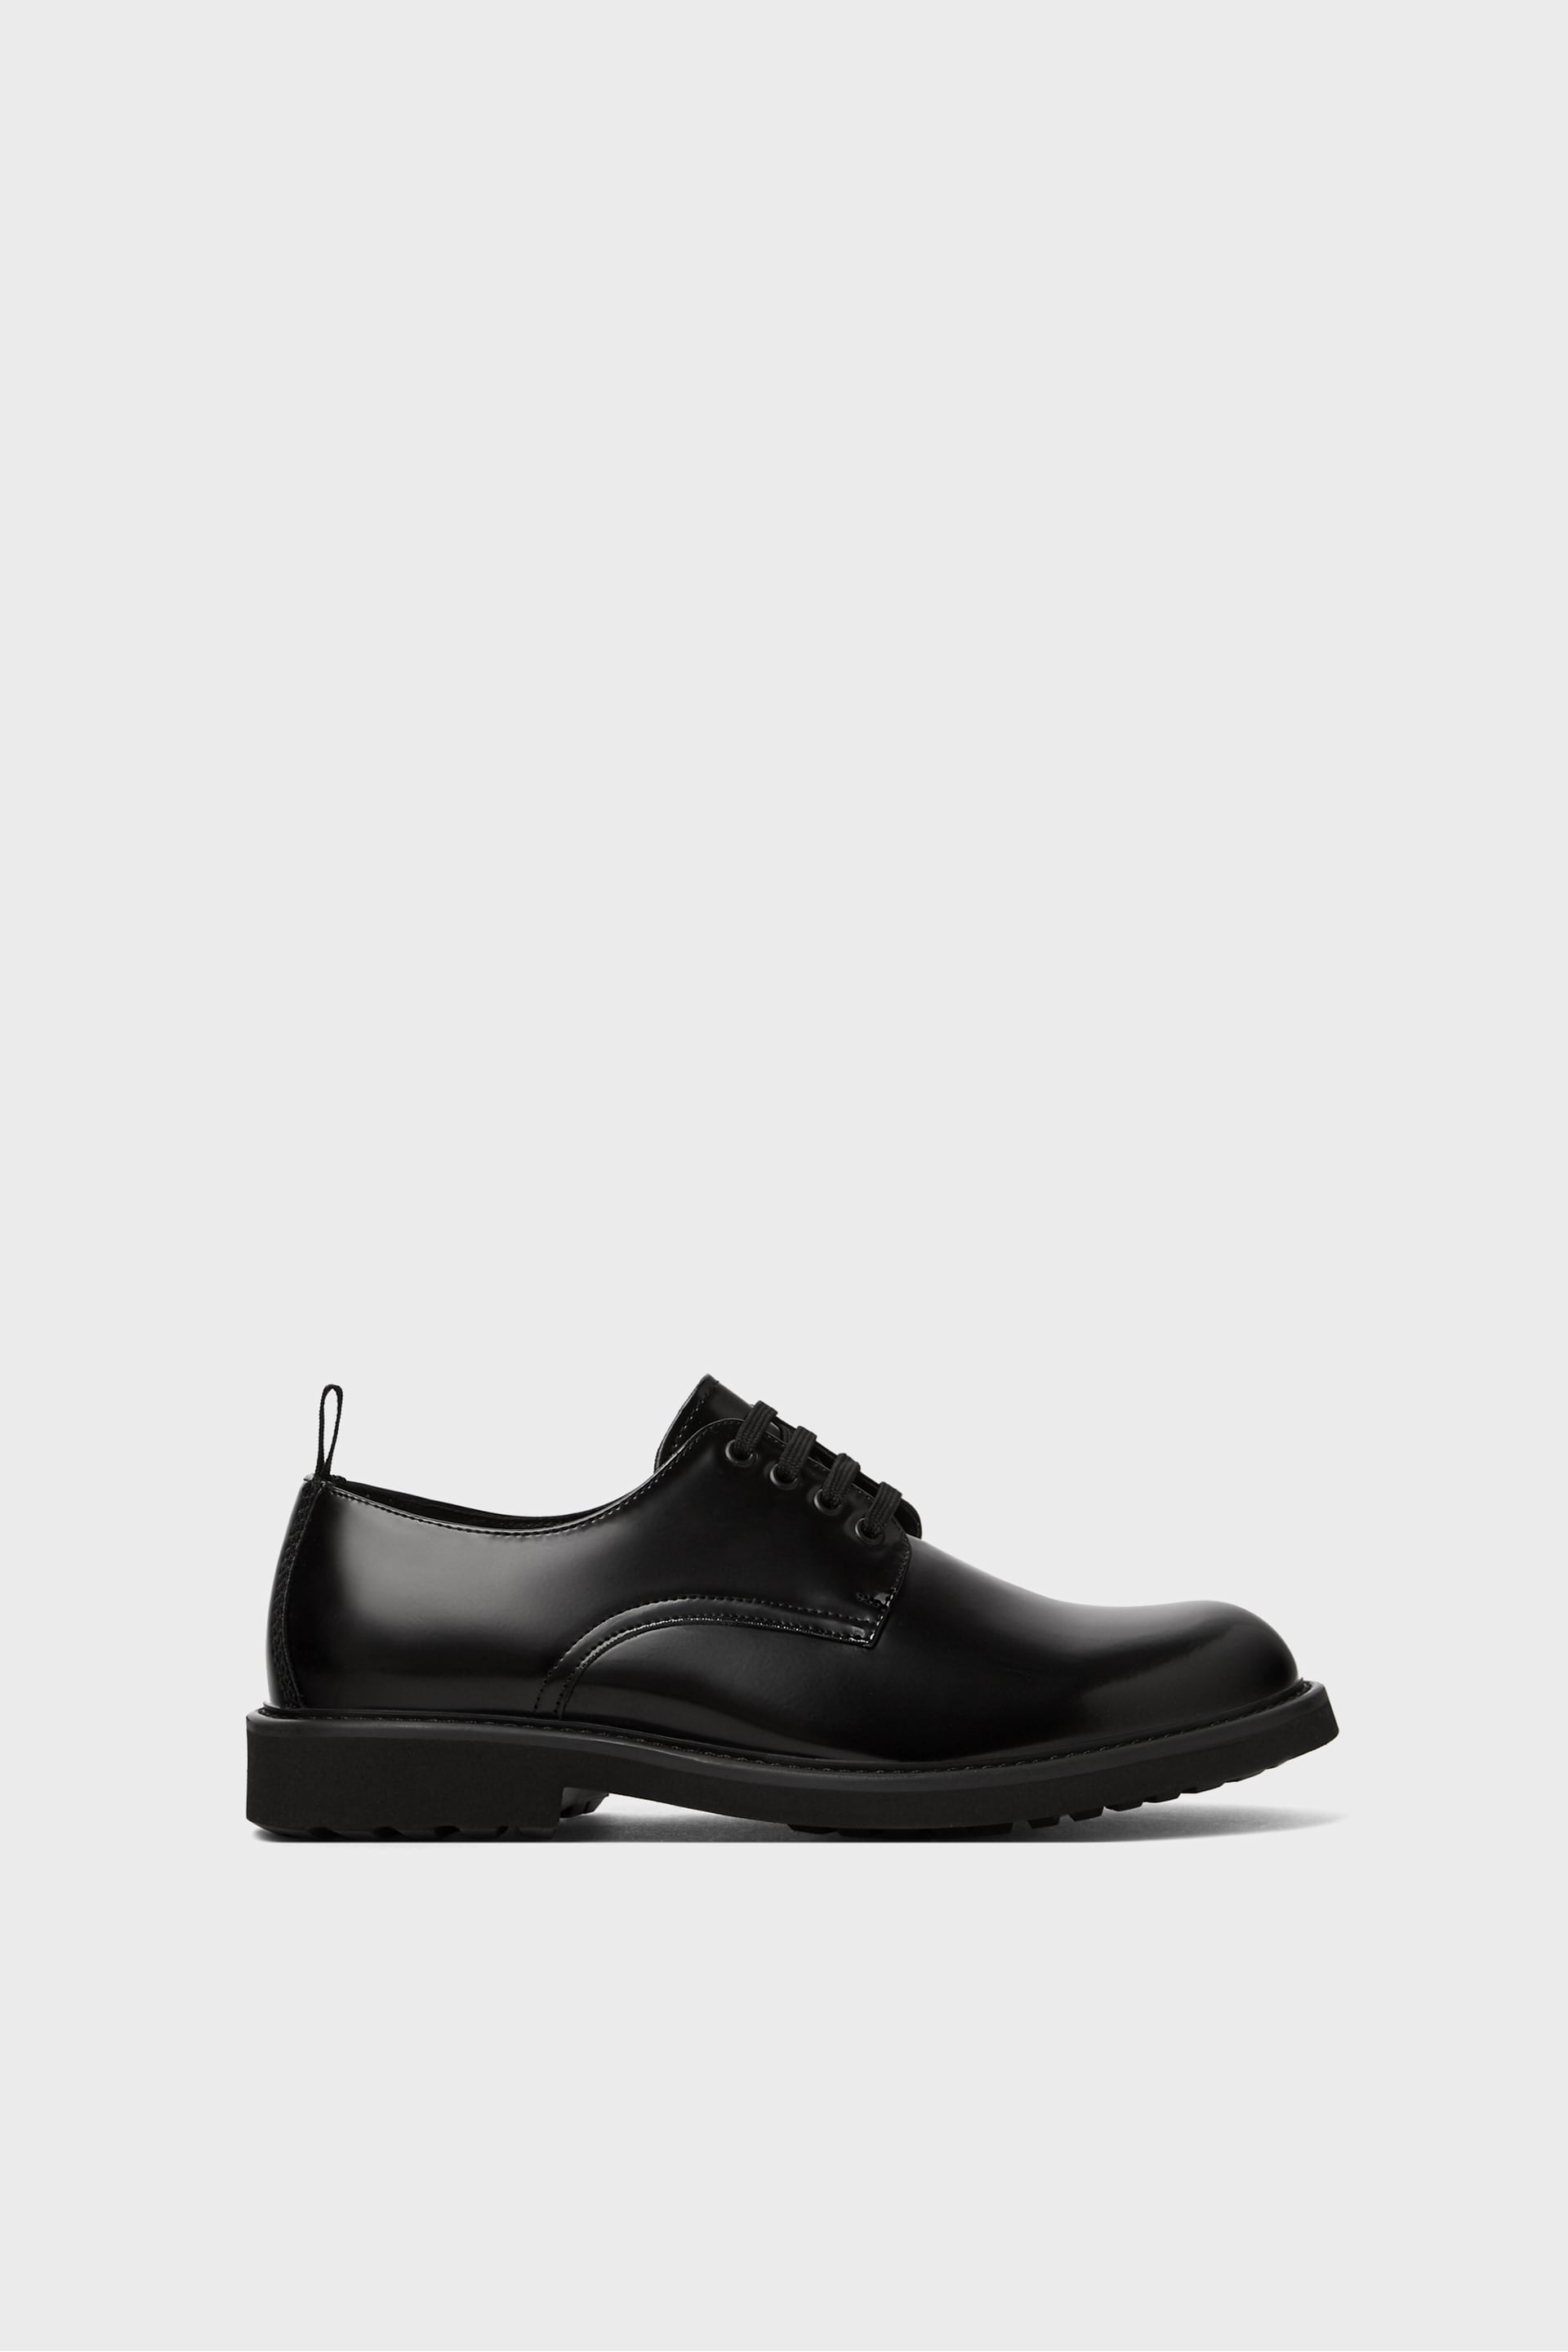 Black Shoes    Zara Light View All Man Shoes New Collection by Zara